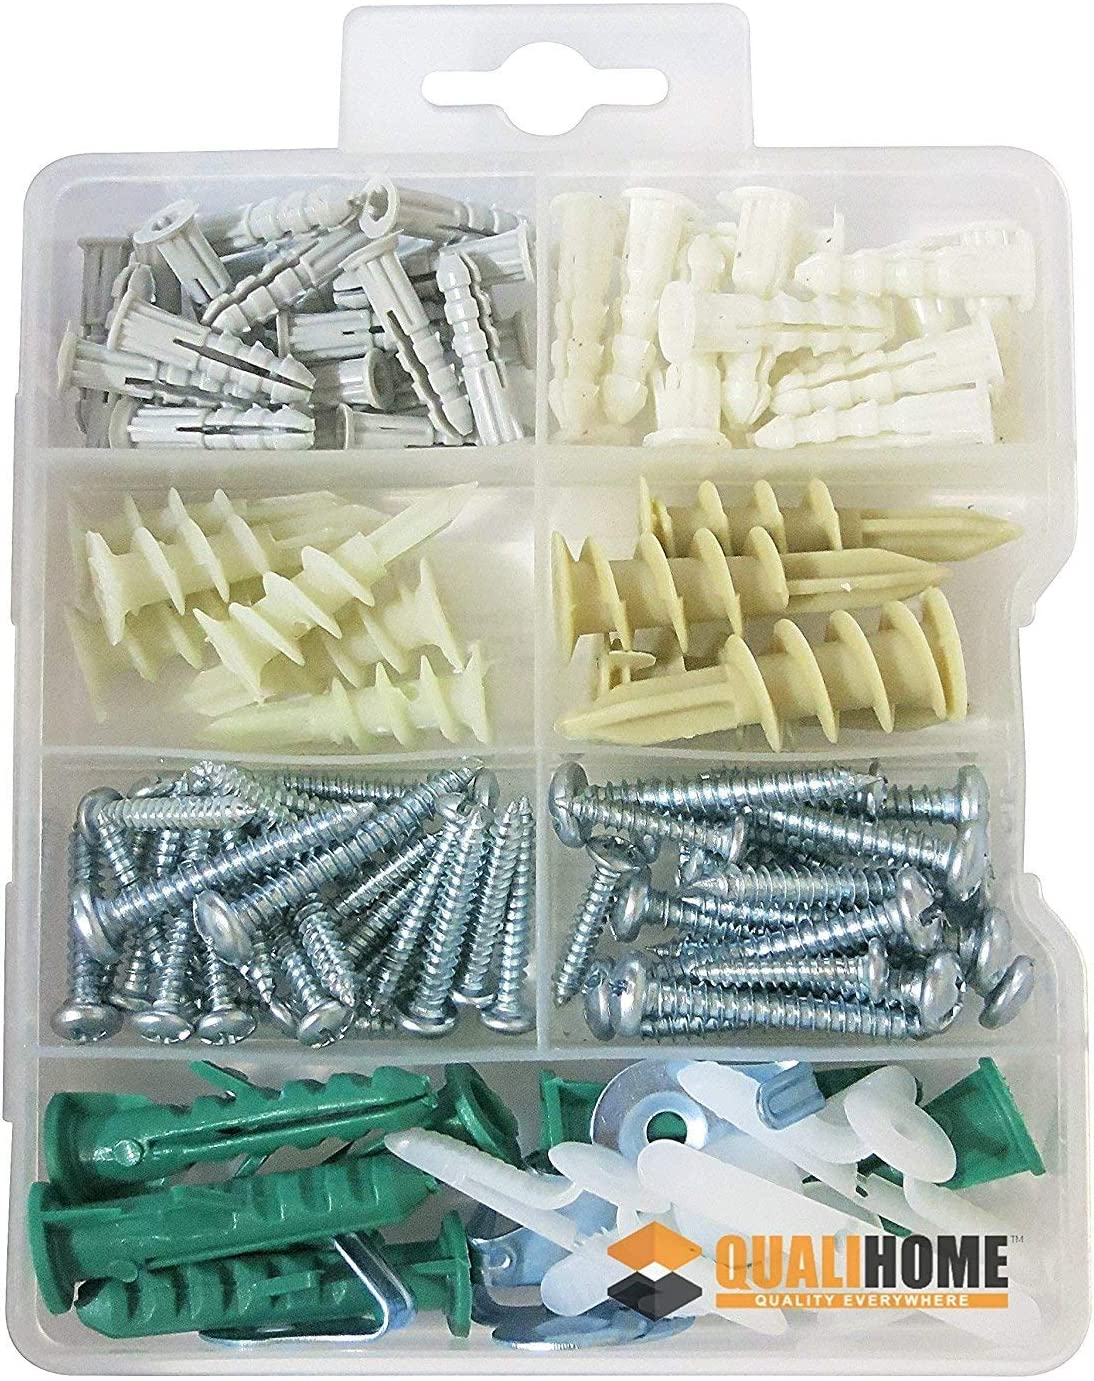 Wall Anchor Hooks Anchors Drywall and Hollow-Wall Anchor Assortment Kit Anchors with Screws-100Pcs, White and Hollow-Door Toggle Anchor for Drywall,Anchors Screws Drywall Anchor Kit